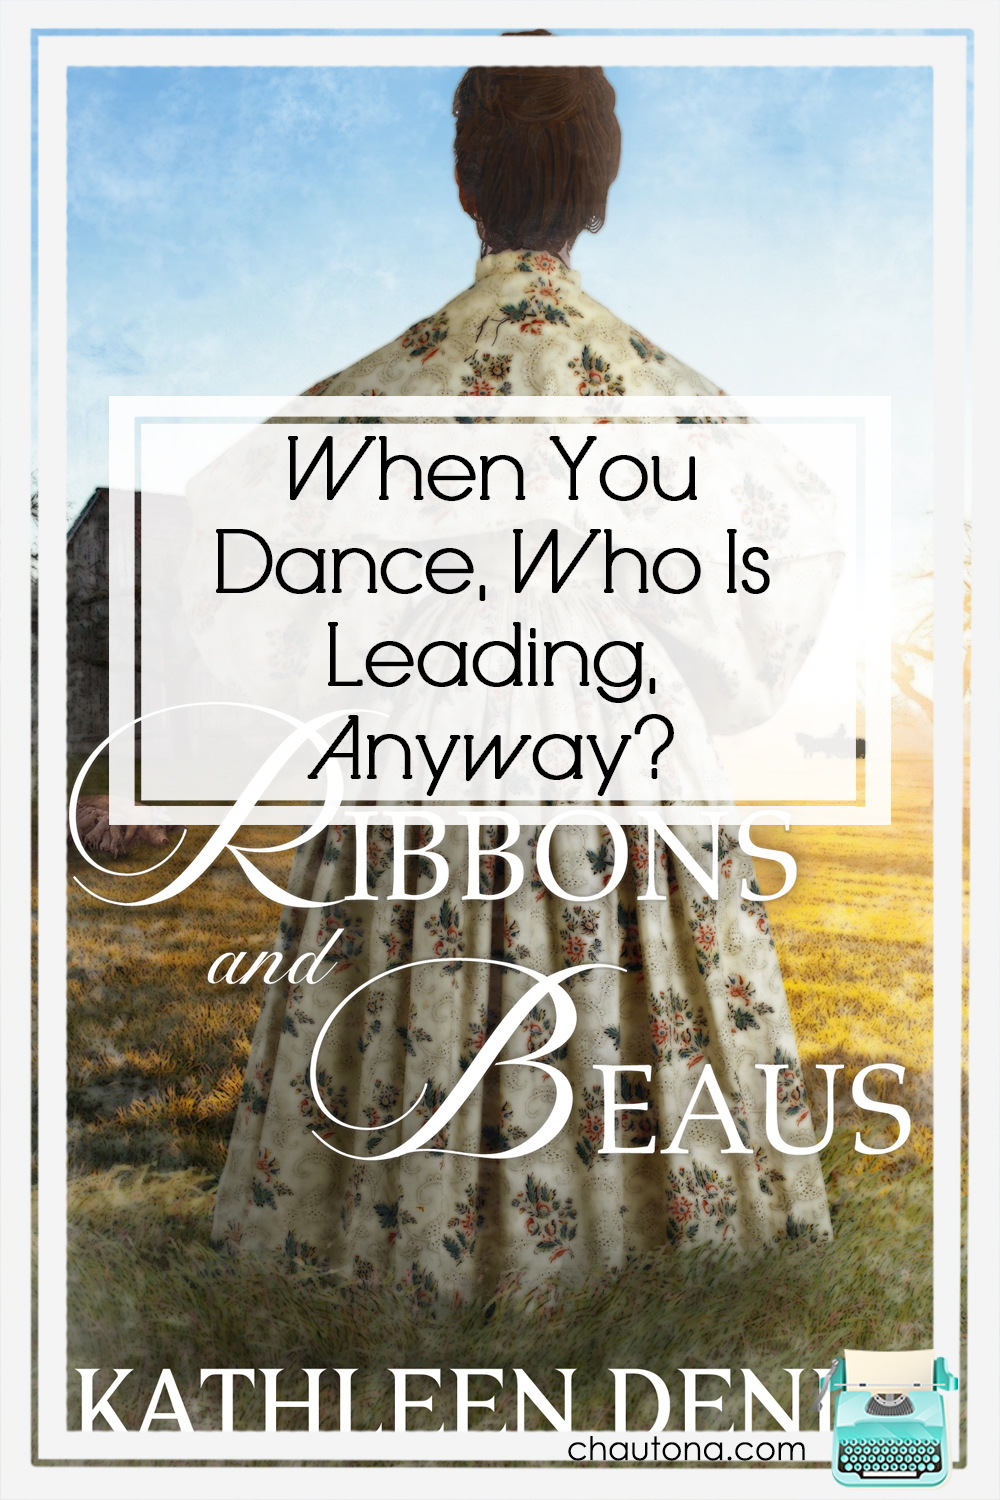 When You Dance, Who Is Leading, Anyway? via @chautonahavig